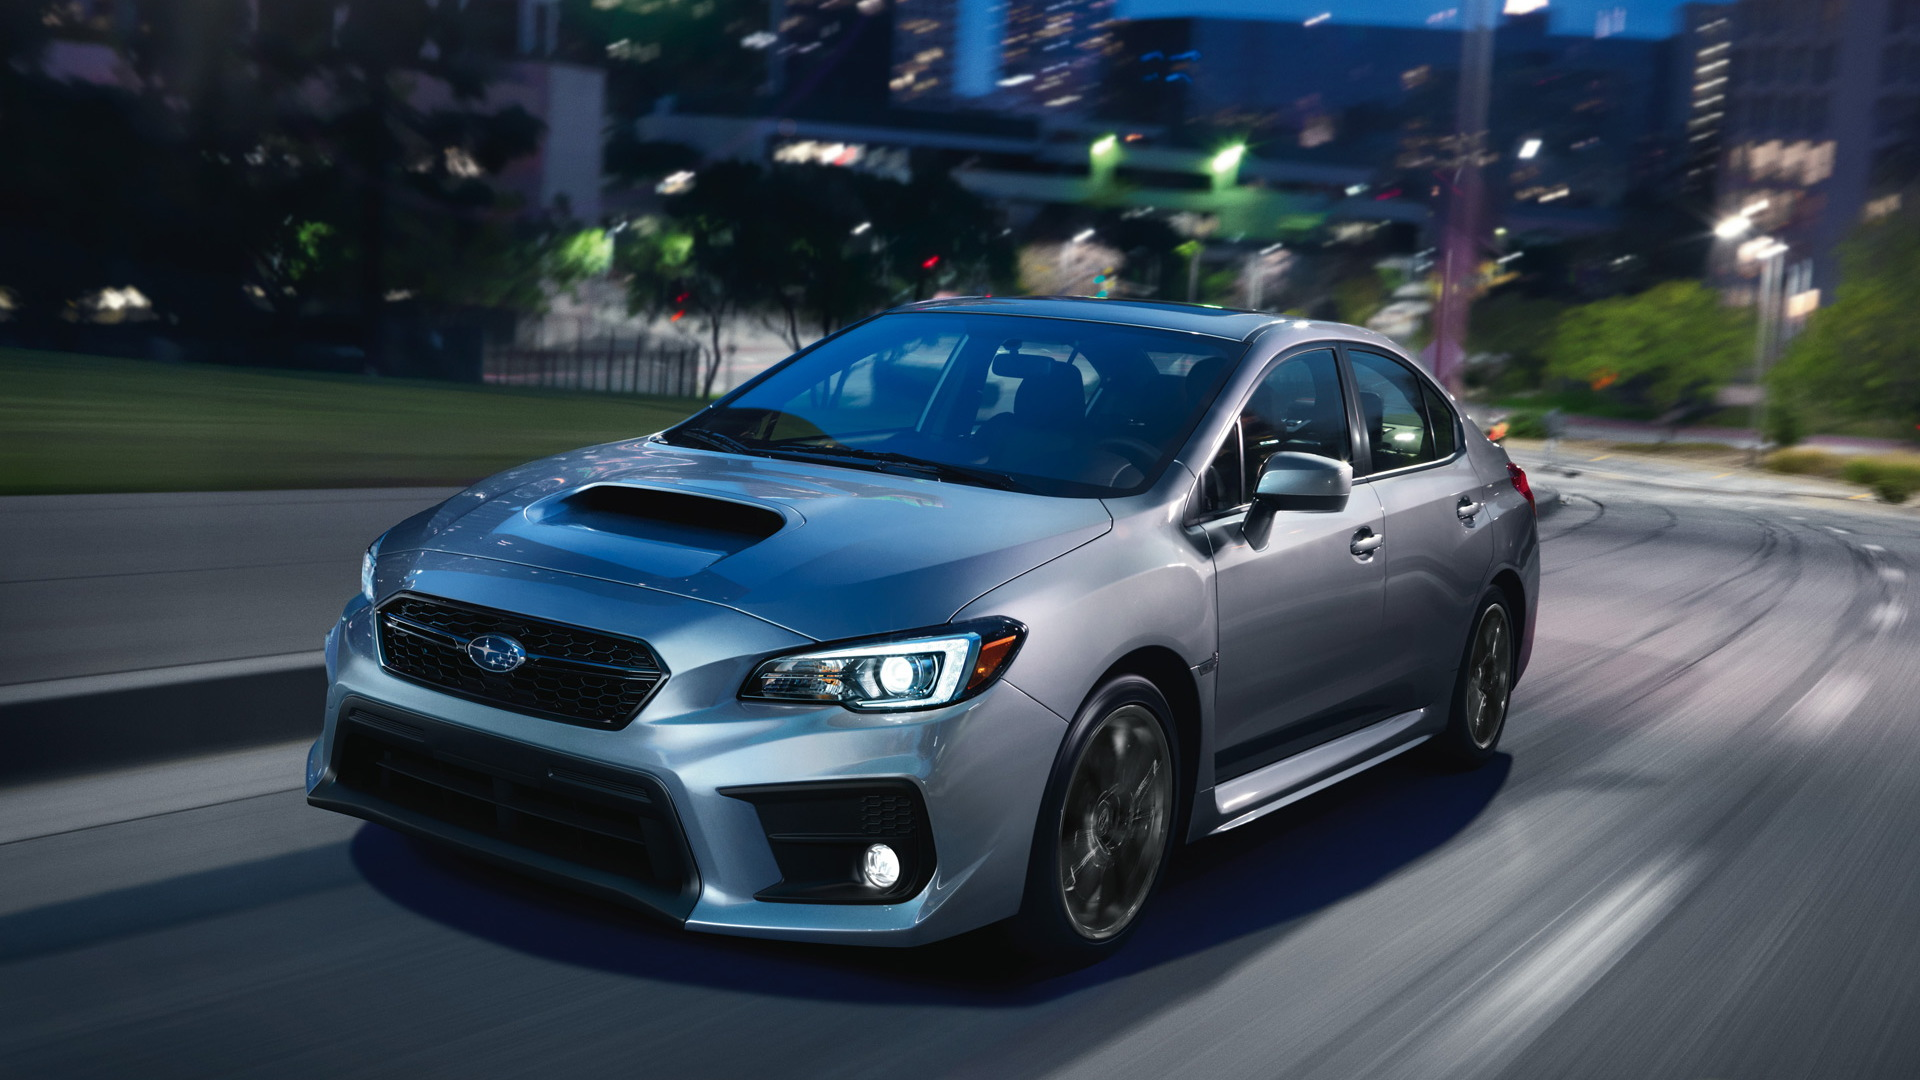 2020 Subaru Wrx And Wrx Sti Preview